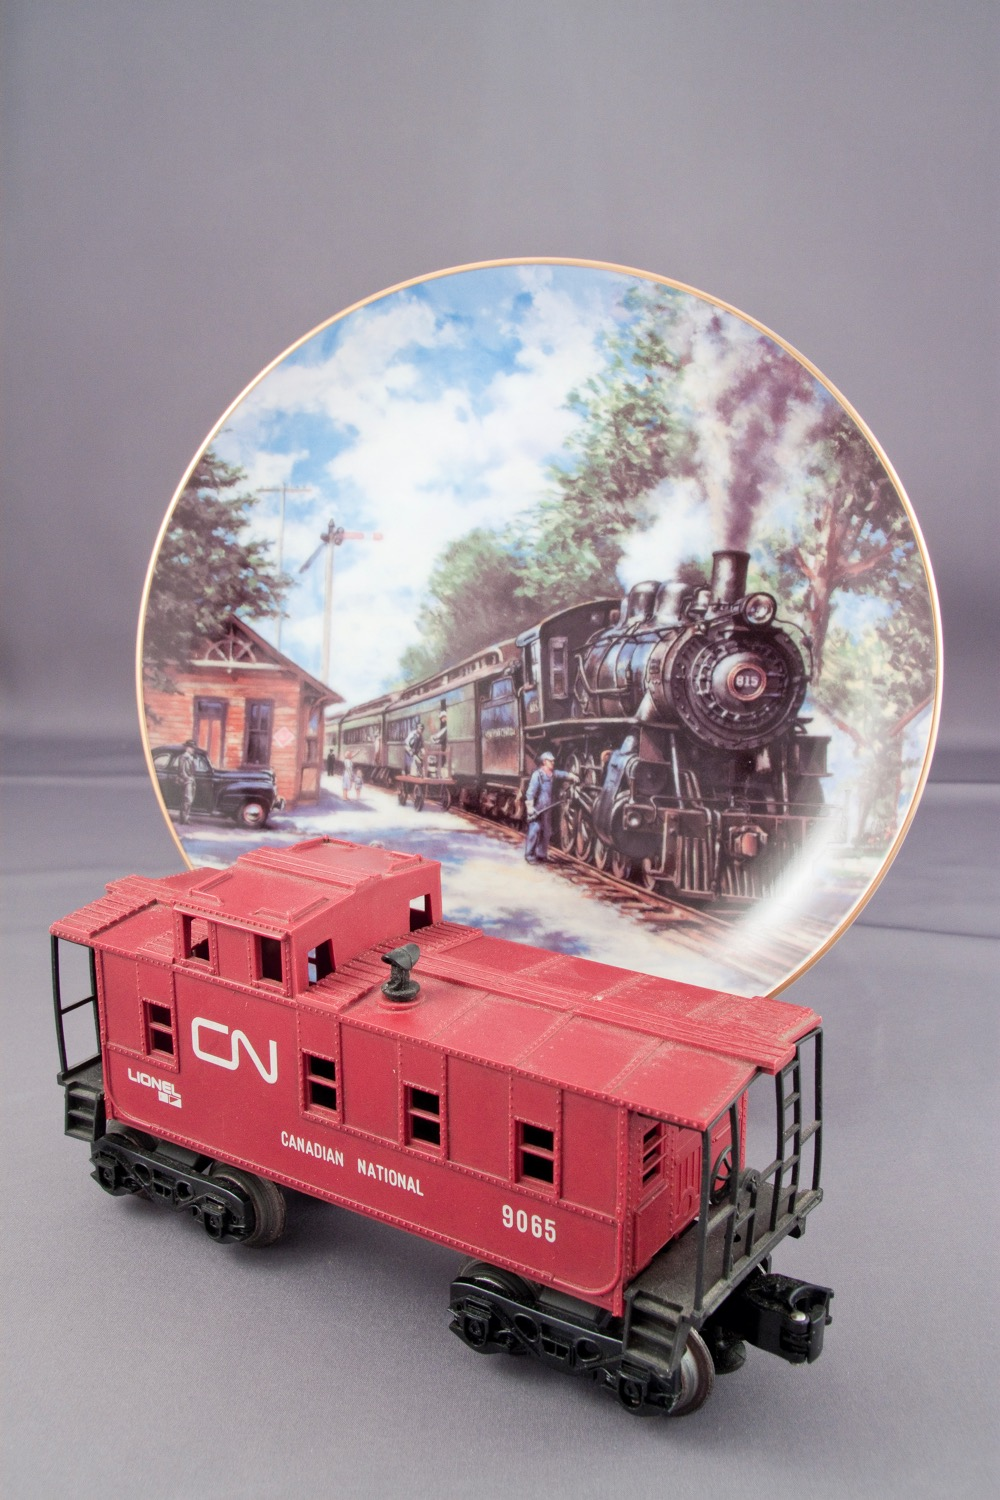 A collector's plate featuring a steam locomotive-hauled train and a Lionel-made Canadian National branded caboose.